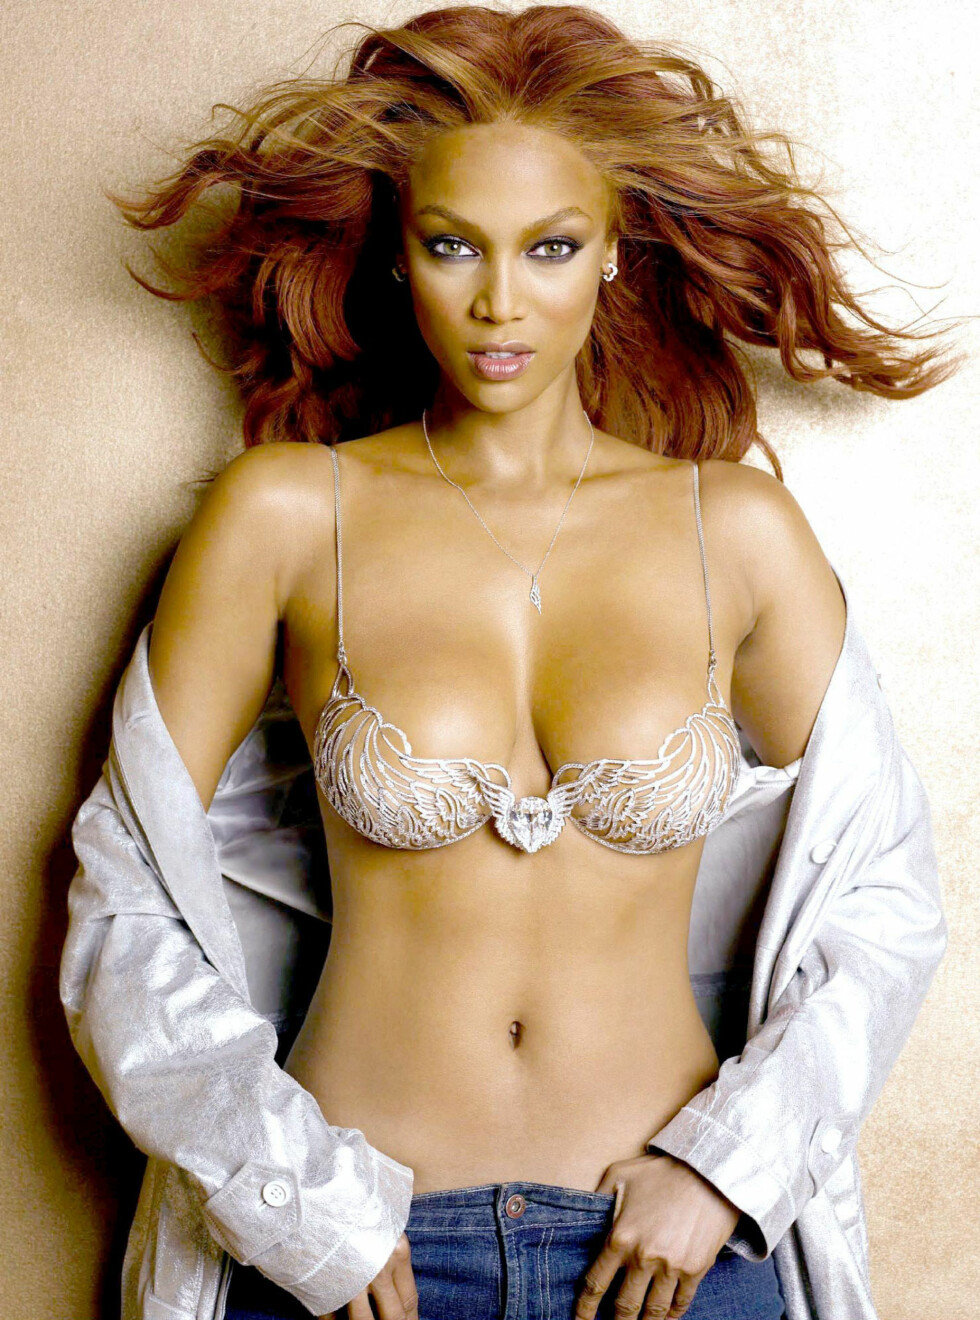 I 70-TALLSSTIL: Tyra Banks i 2004 i The Heavenly 70  Fantasy-bh til nesten 80 millioner kroner. Foto: REX/GREG KIDEL/All Over Press